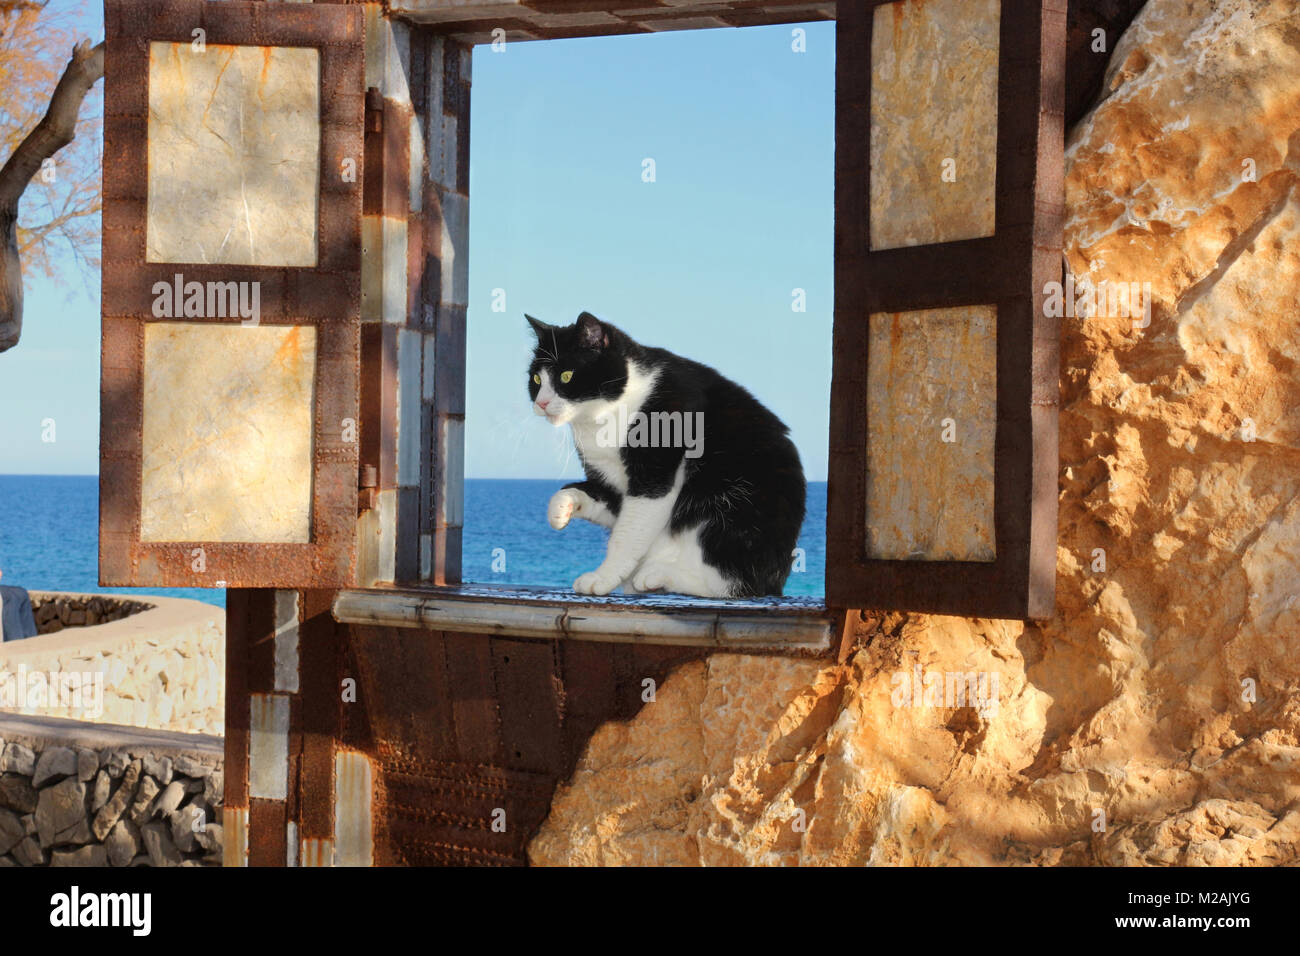 domestic cat sitting in a window at the sea - Stock Image